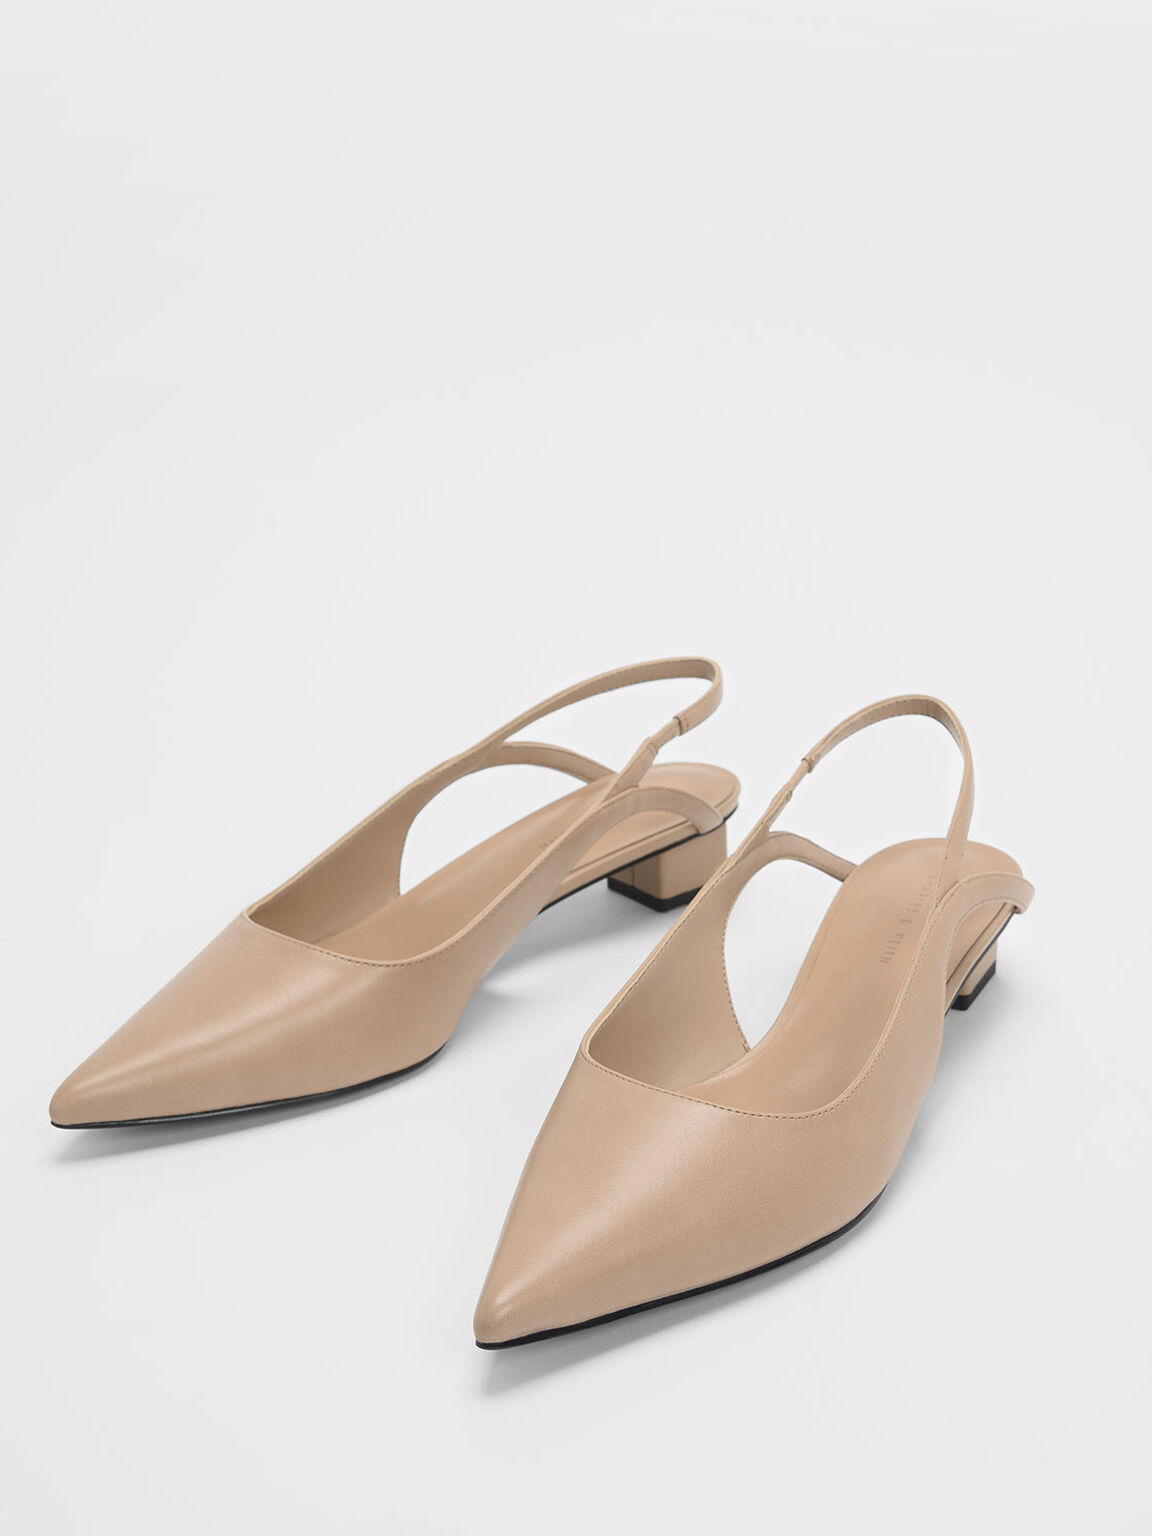 Low Block Heel Slingback Pumps, Nude, hi-res